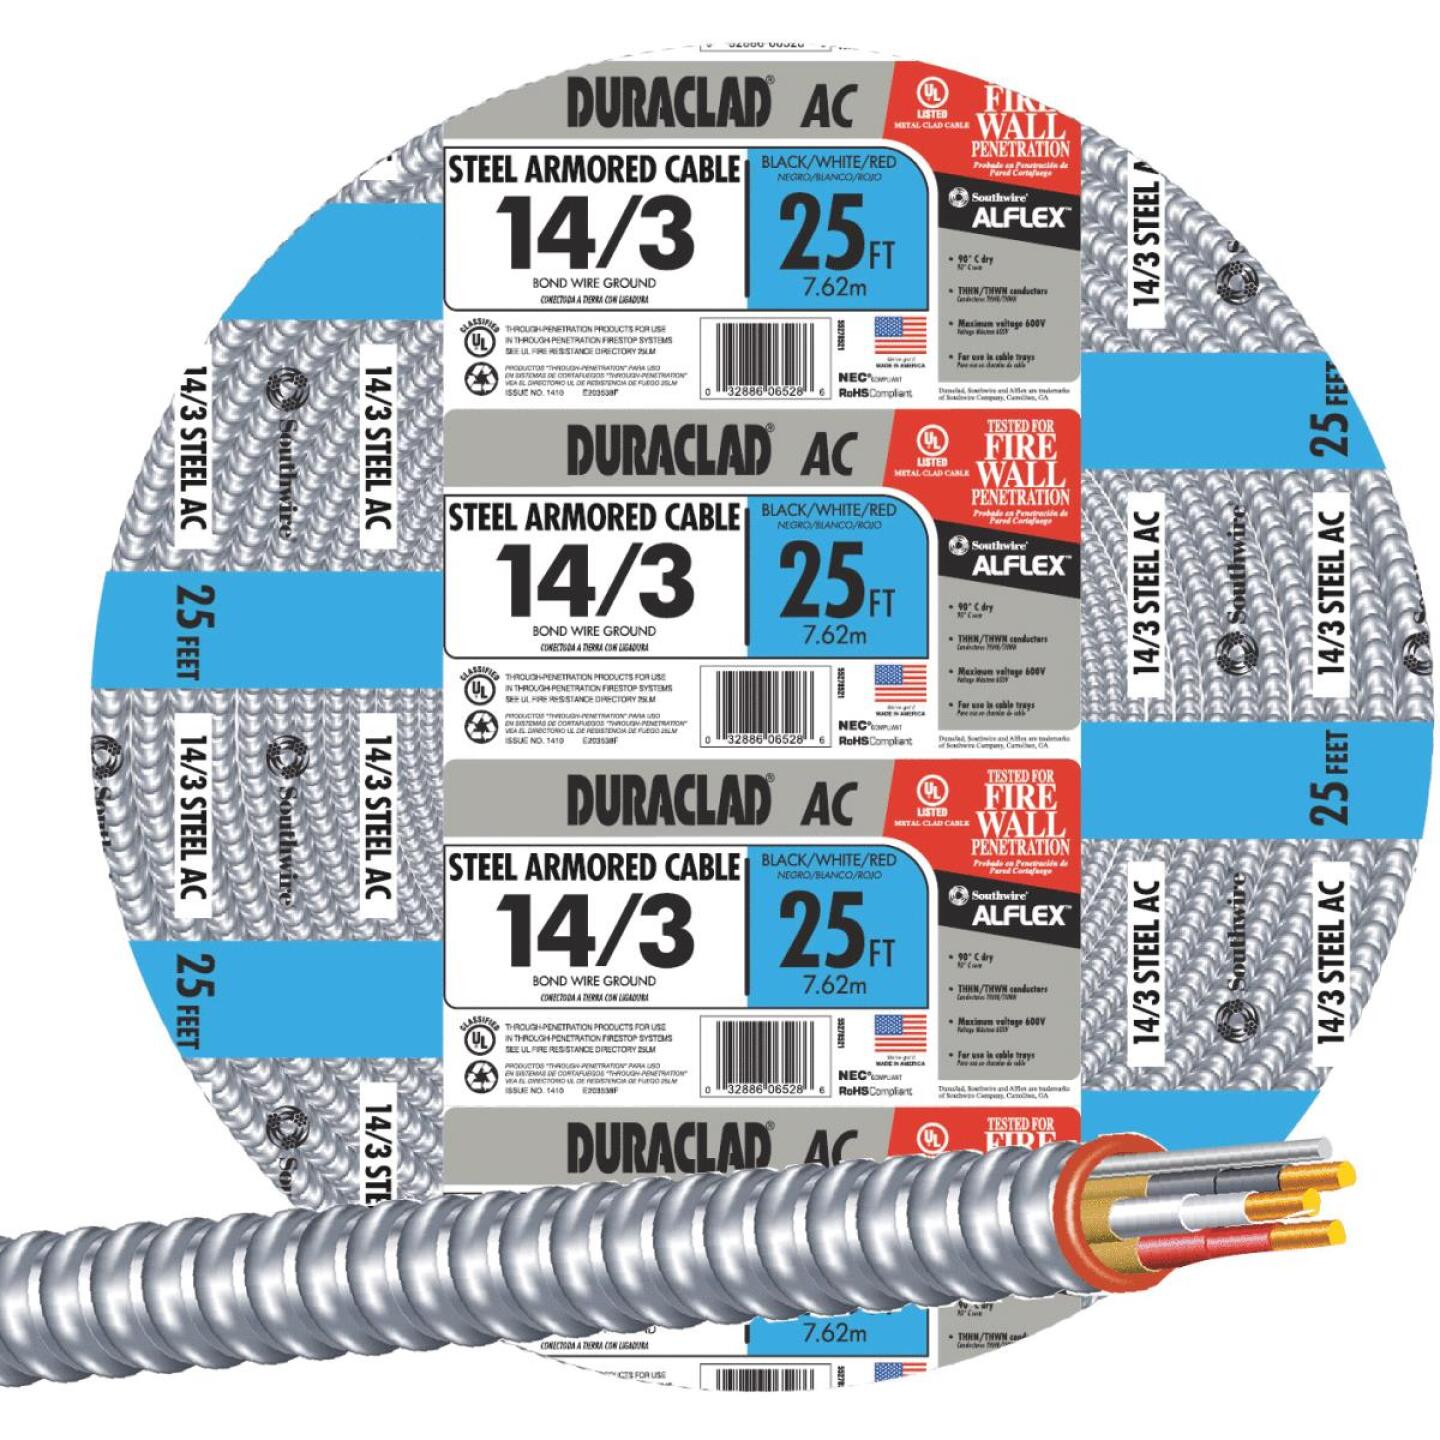 Southwire 25 Ft. 14/3 AC Armored Cable Image 1